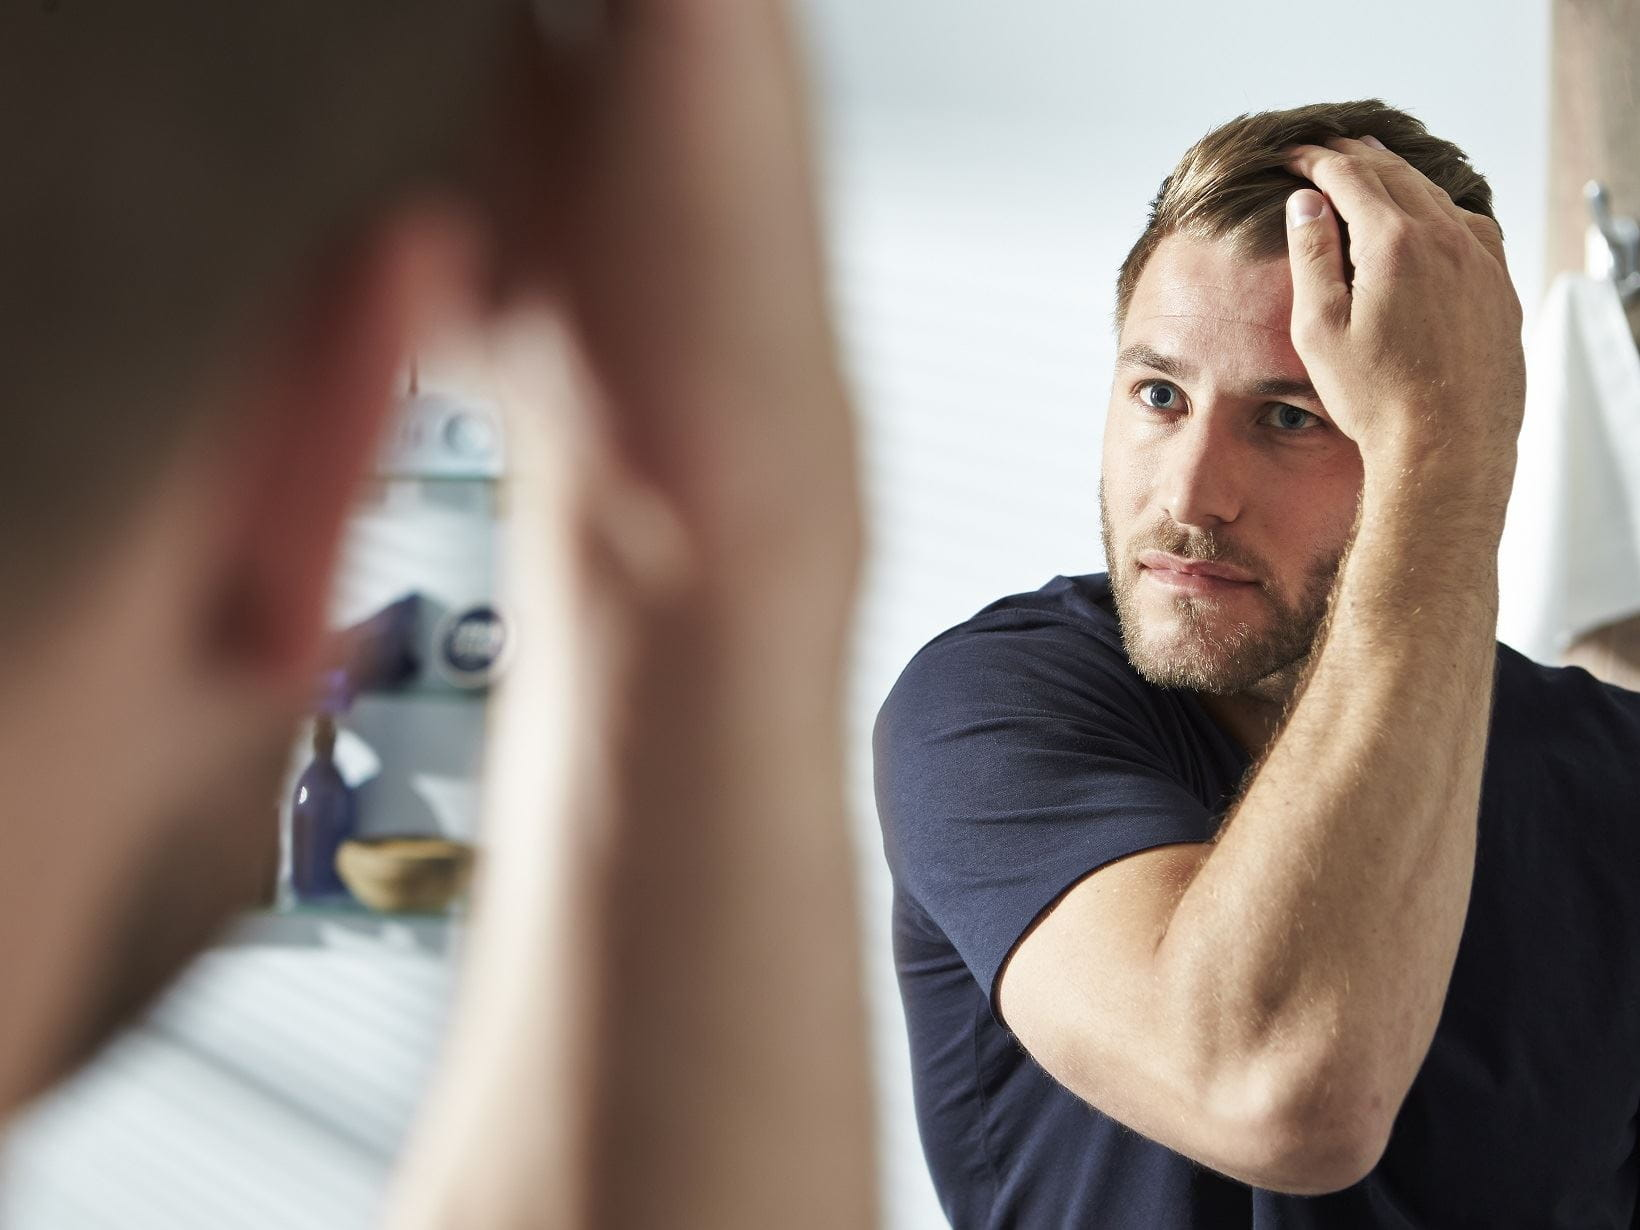 blonde haired man getting rid of his dandruff in front of a mirror